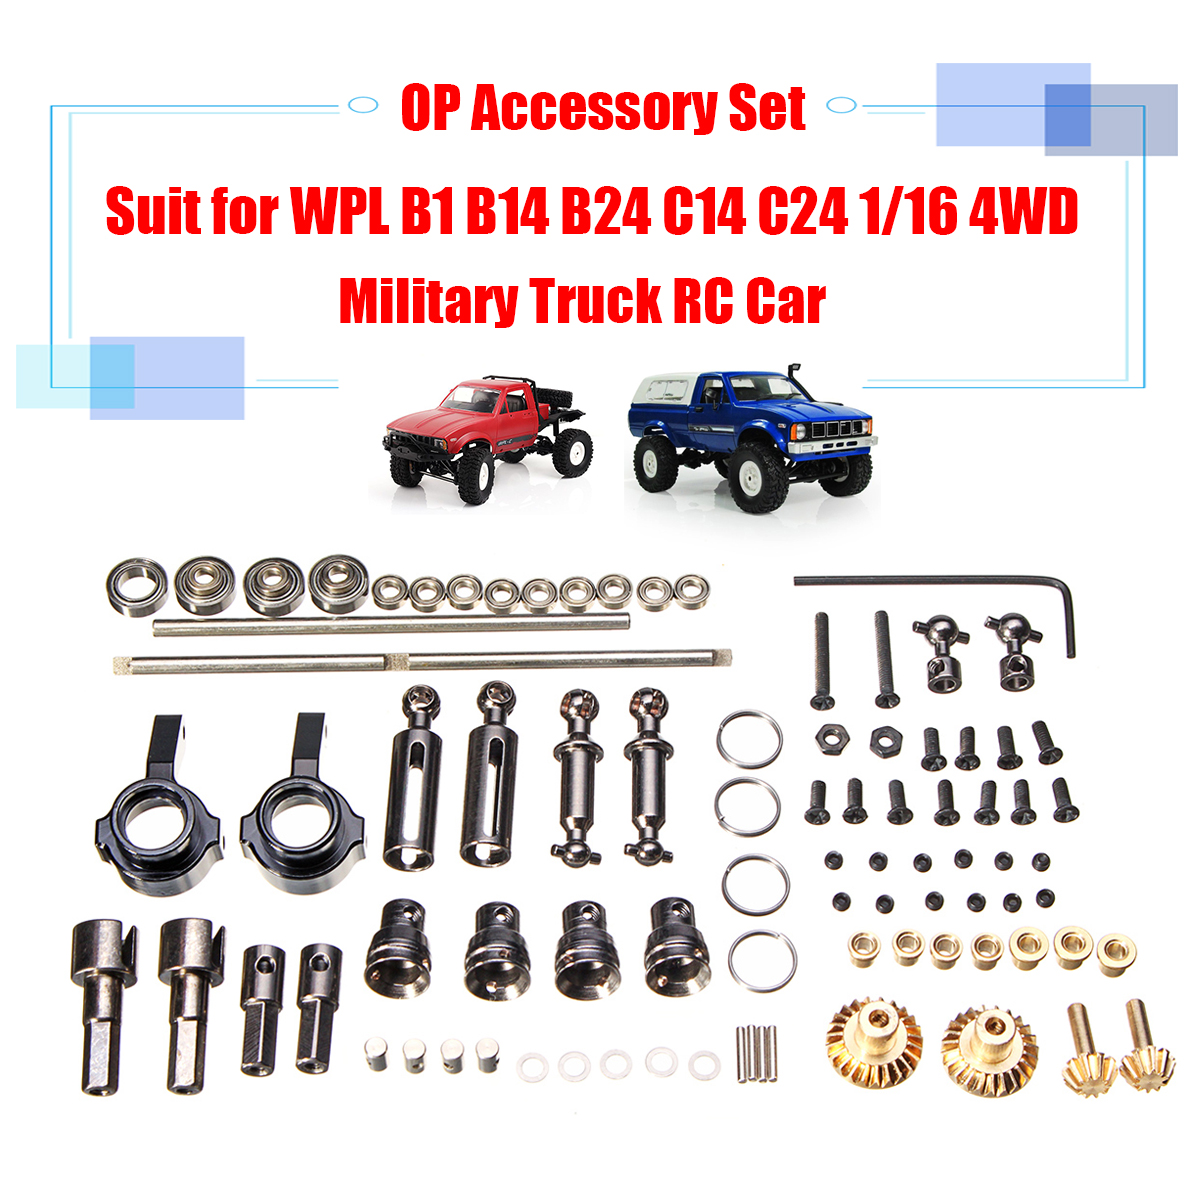 For WPL RC Car B1 B14 B24 C14 C24 1/16 4WD Military Truck RC Cars Spare Part Set Upgrade Metal OP Accessory Set Perfect-fitFor WPL RC Car B1 B14 B24 C14 C24 1/16 4WD Military Truck RC Cars Spare Part Set Upgrade Metal OP Accessory Set Perfect-fit